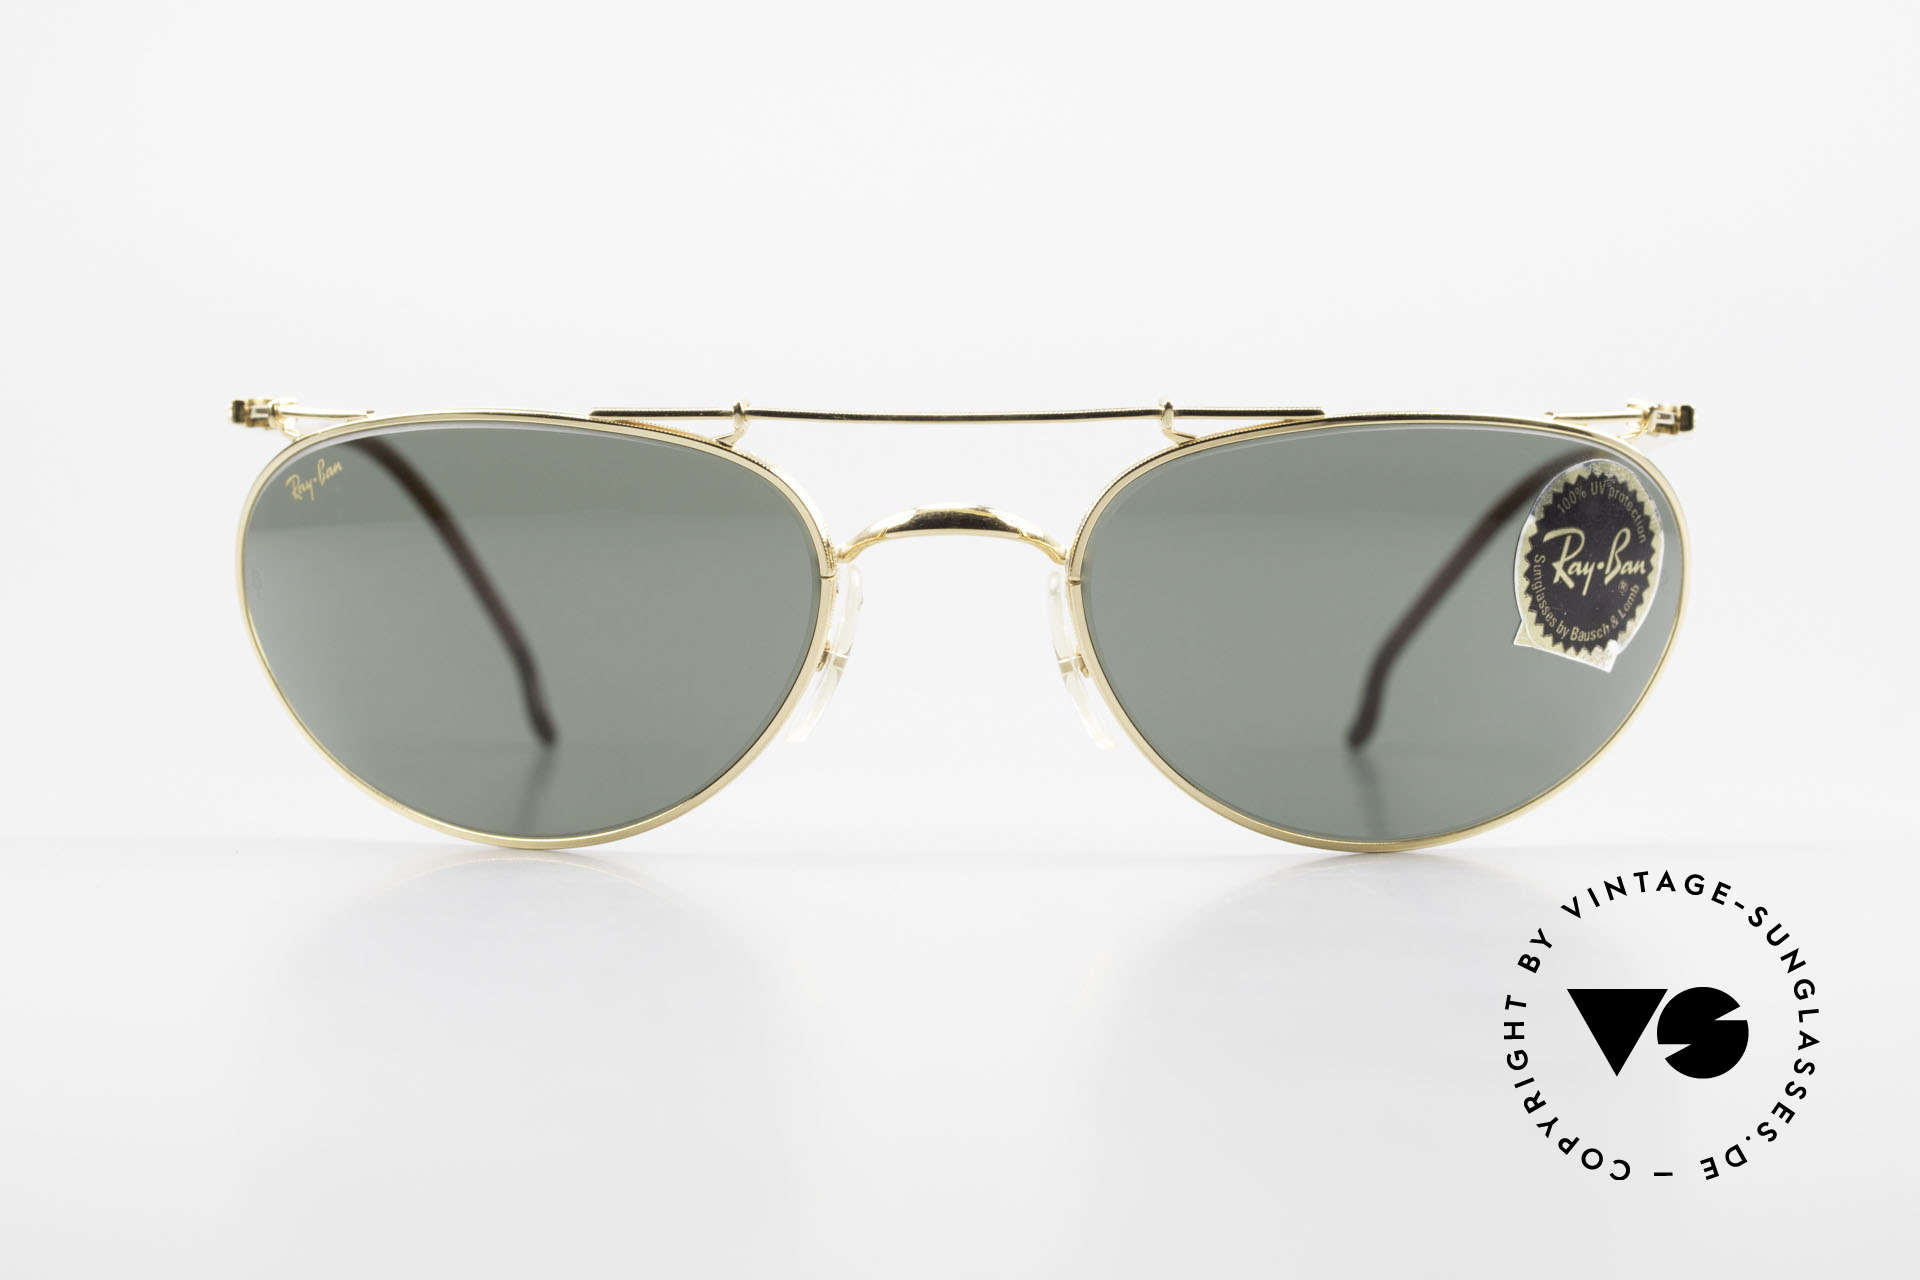 Ray Ban Deco Metals Wrap Old Bausch Lomb Ray-Ban USA, vintage 1990's designer-sunglasses; made in U.S.A., Made for Men and Women